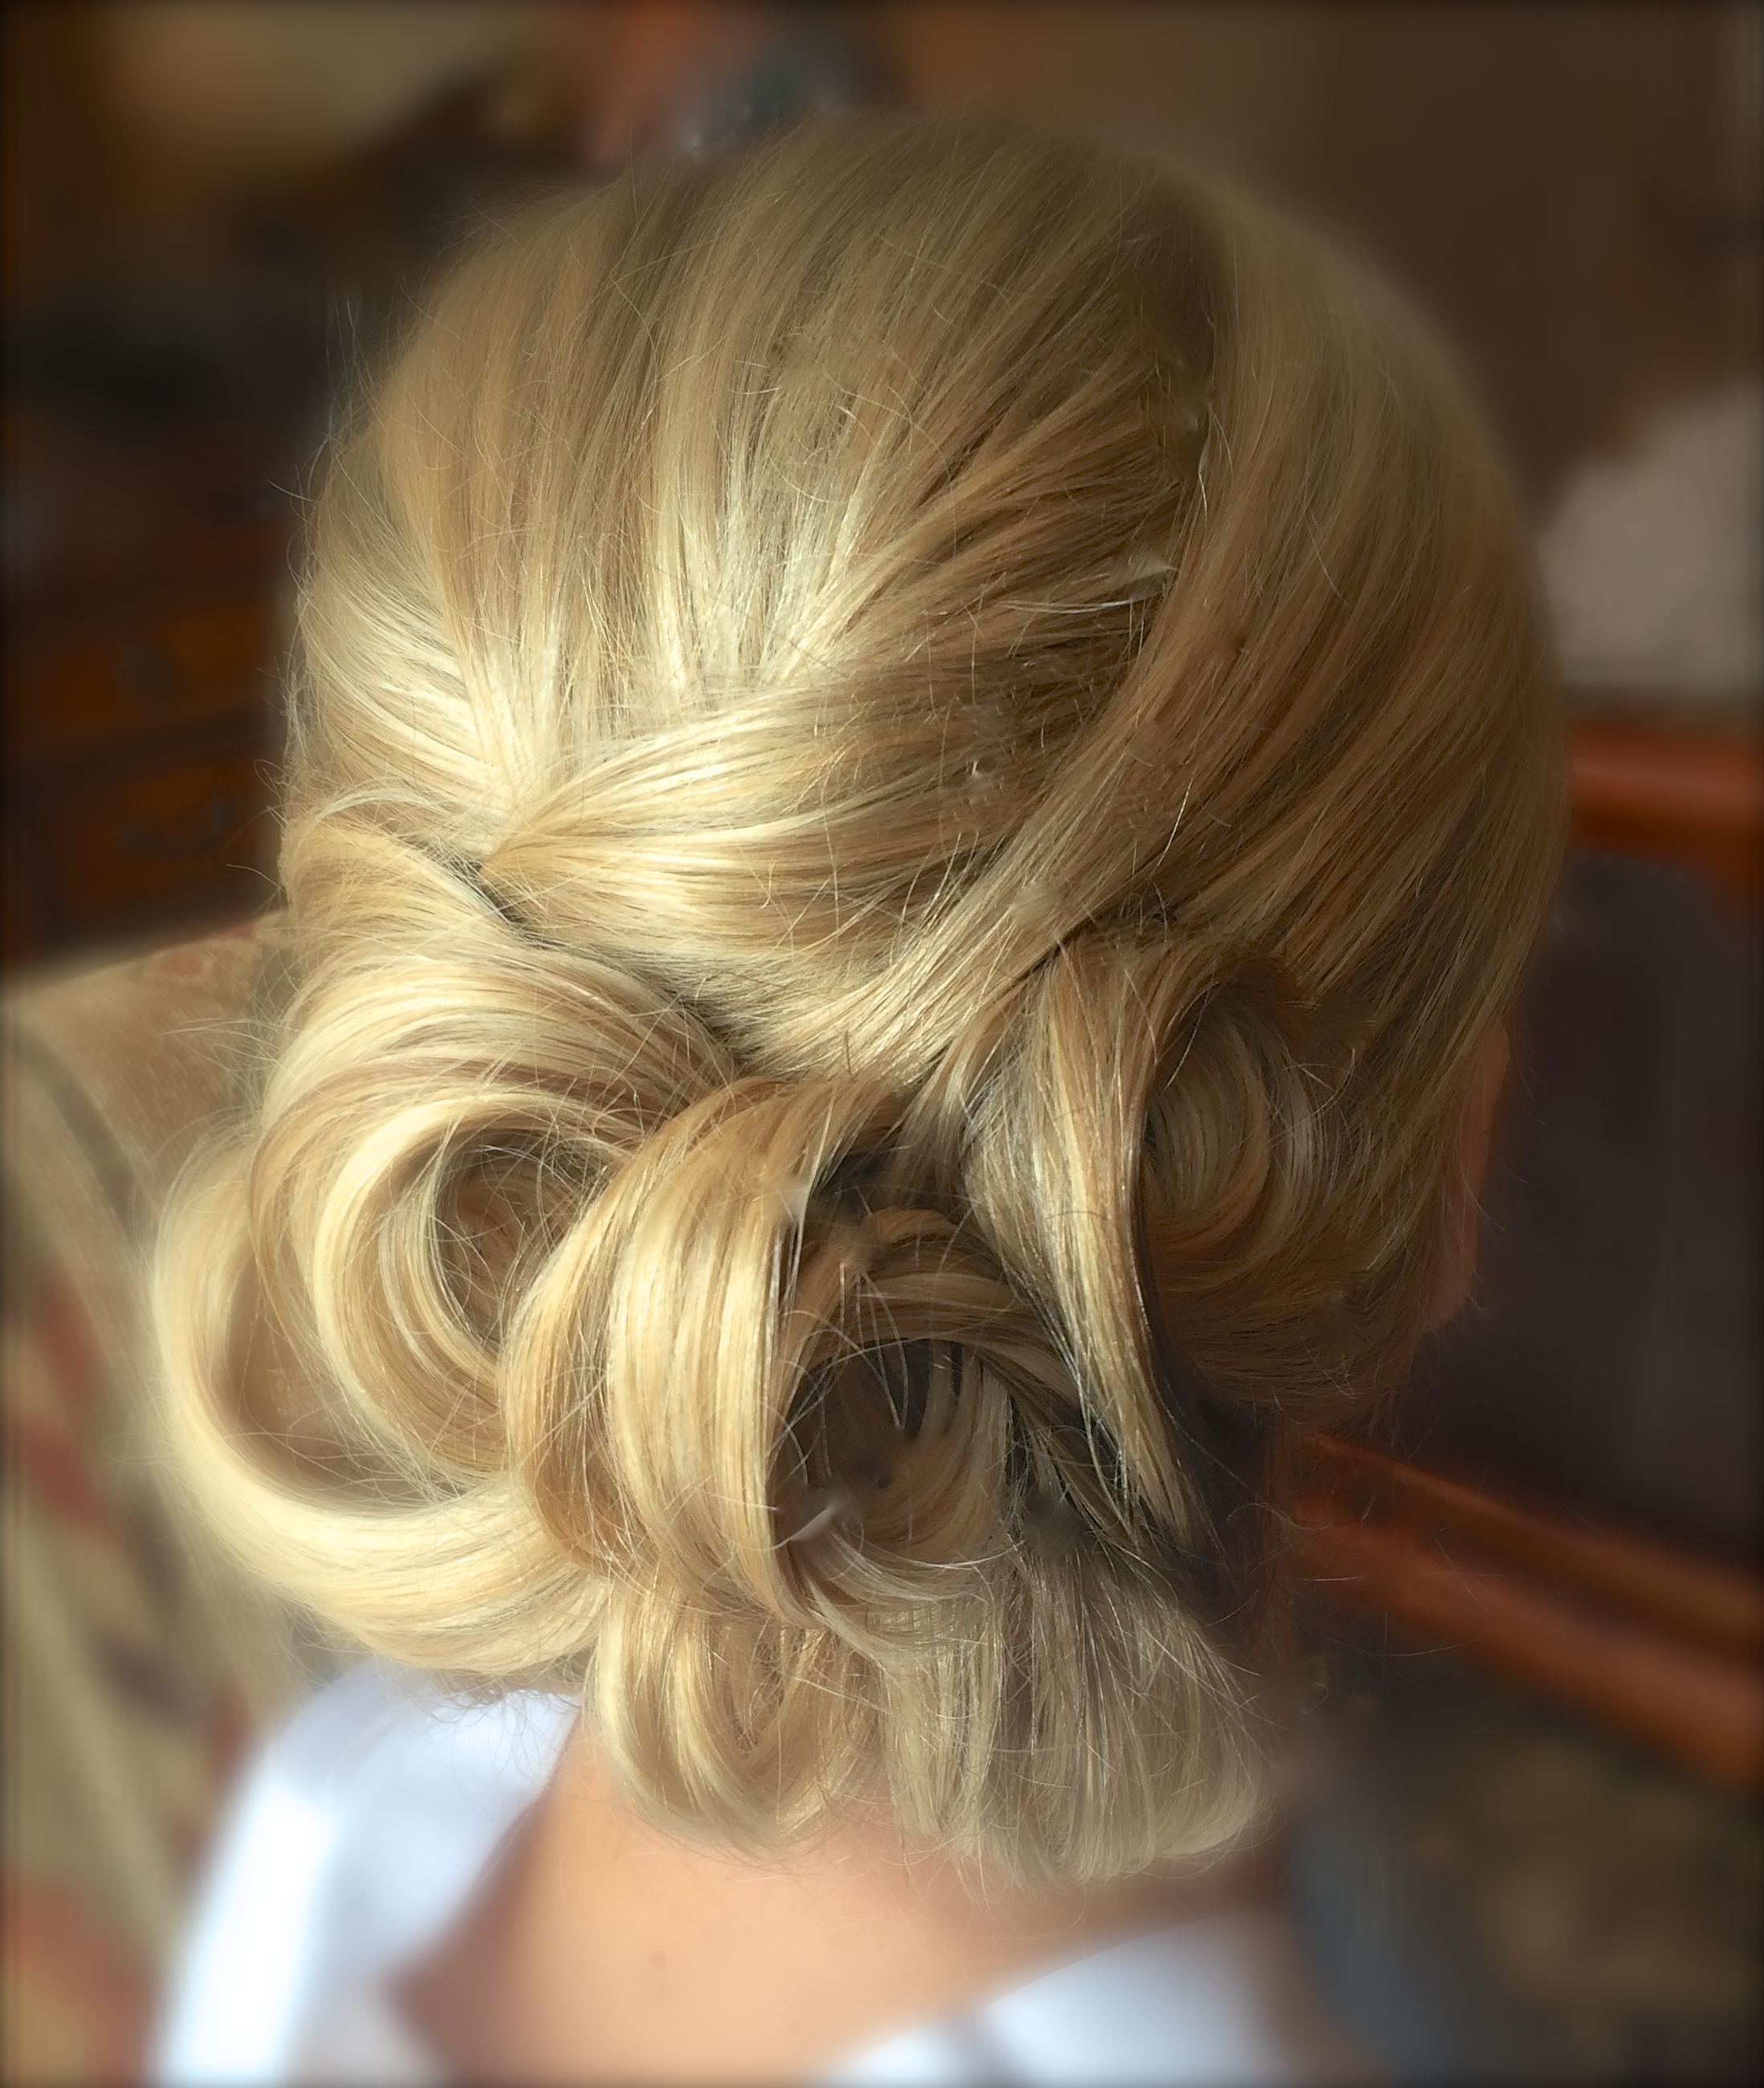 Bridal Hairstylist Breckenridge